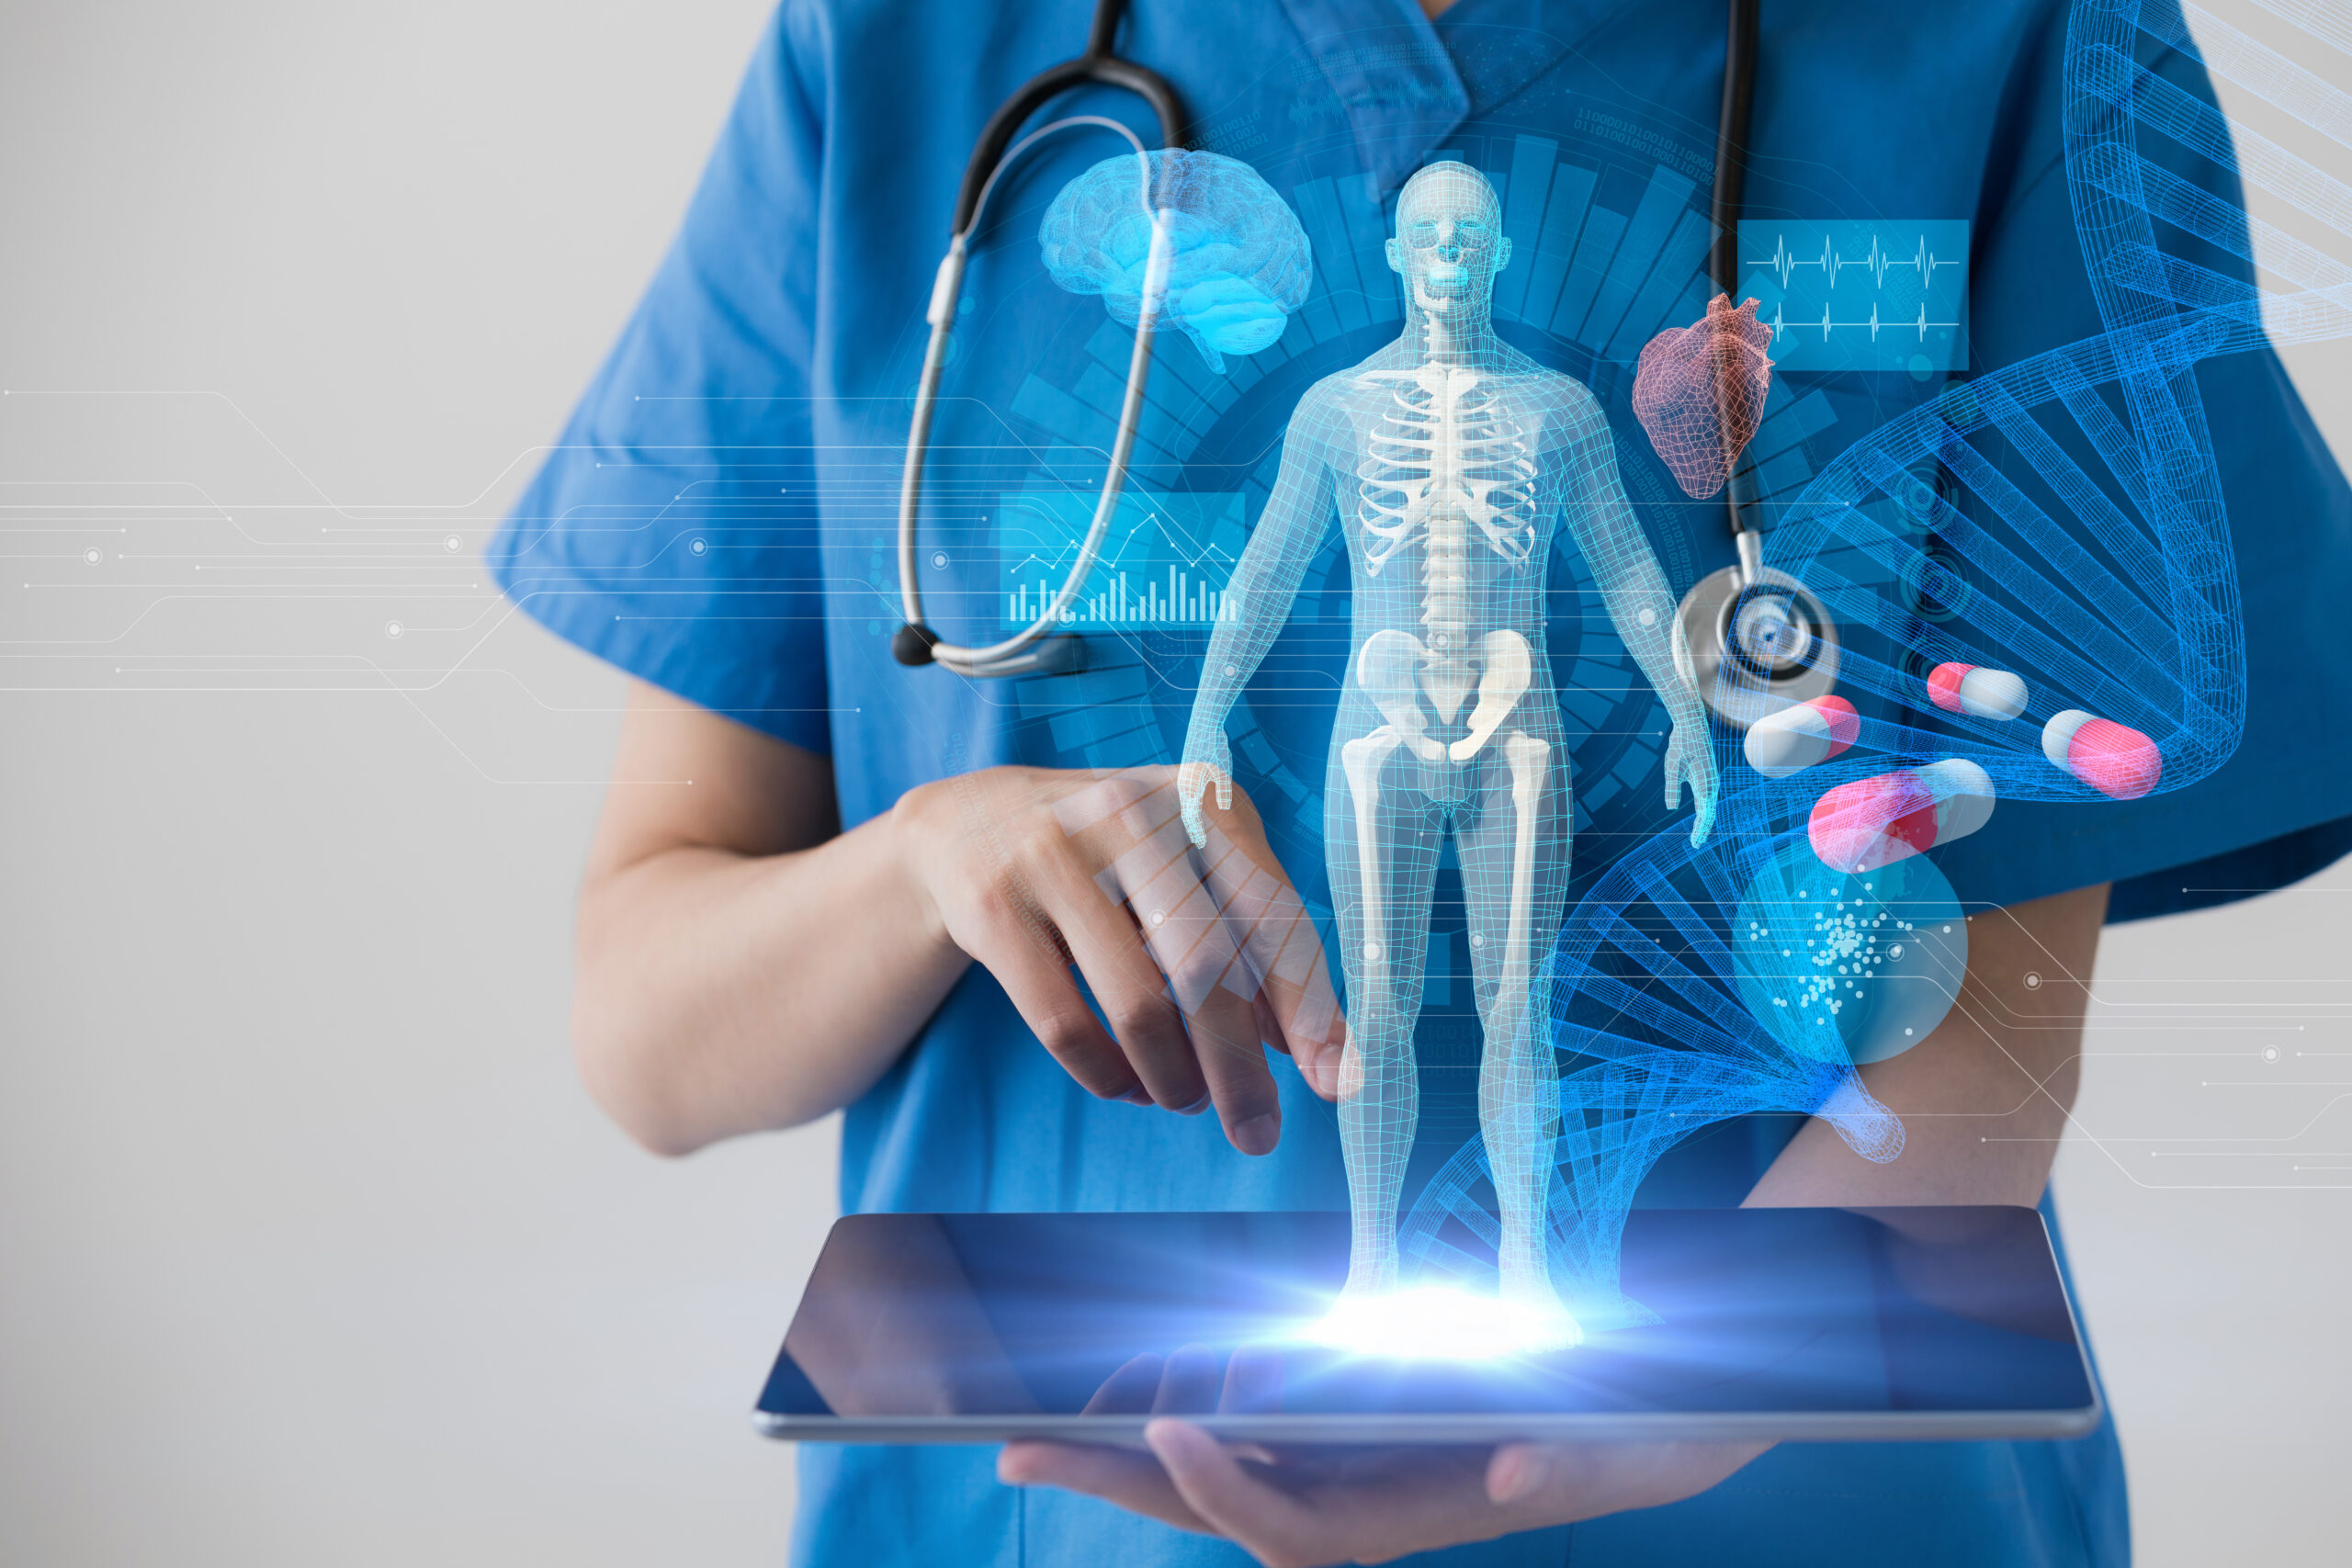 Applied Artificial Intelligence for Health Care